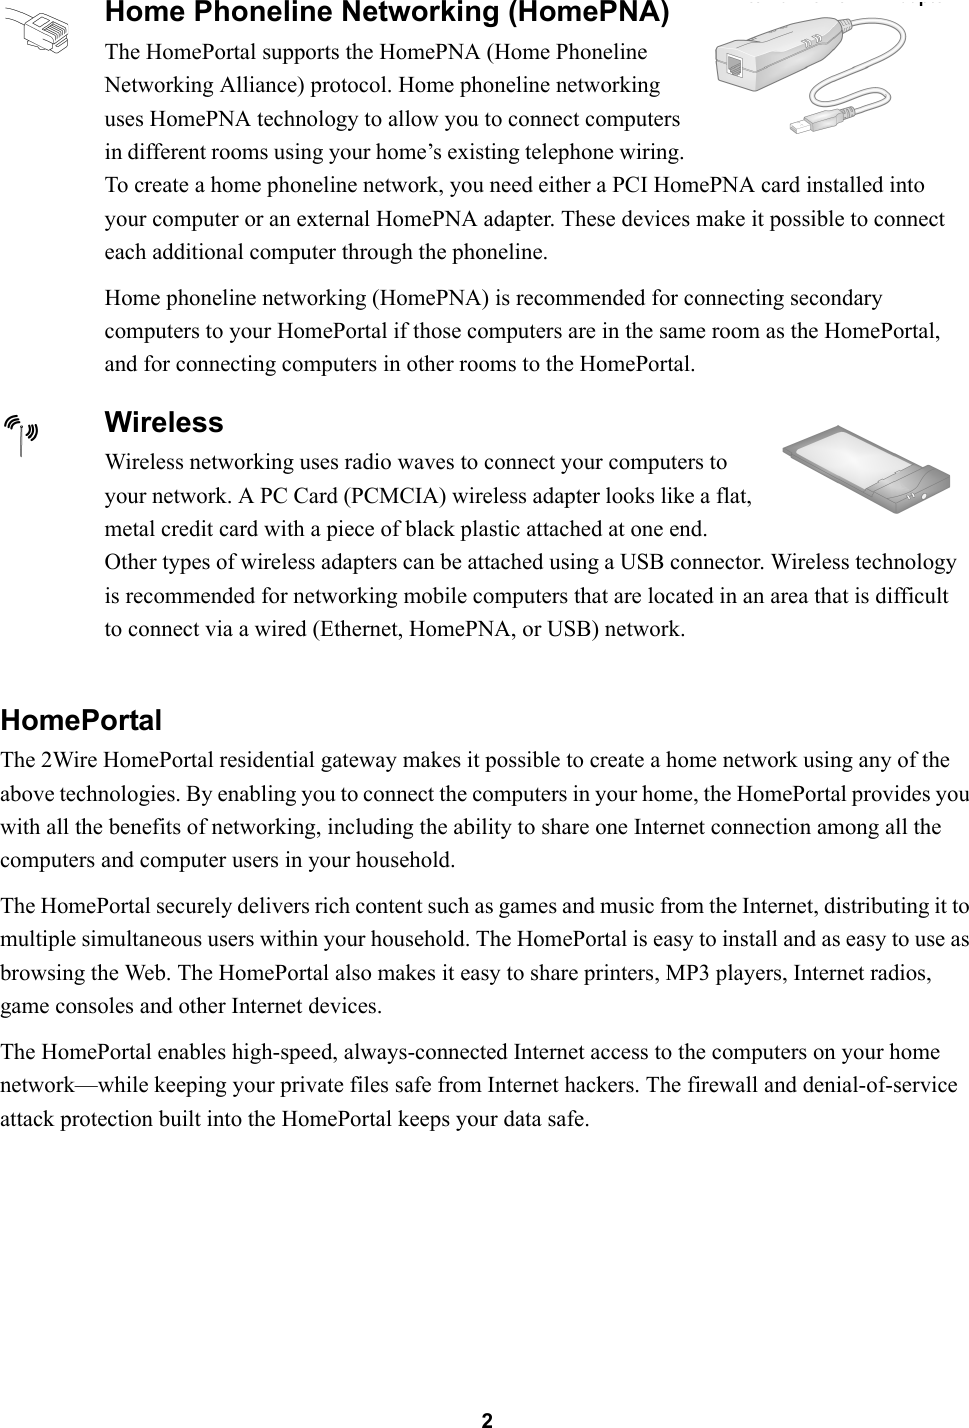 Arris 2wathg01 80211 B G Wireless Router User Manual Book Hpl House Wiring Internet Connection 2homeportalthe 2wire Homeportal Residential Gateway Makes It Possible To Create A Home Network Using Any Of